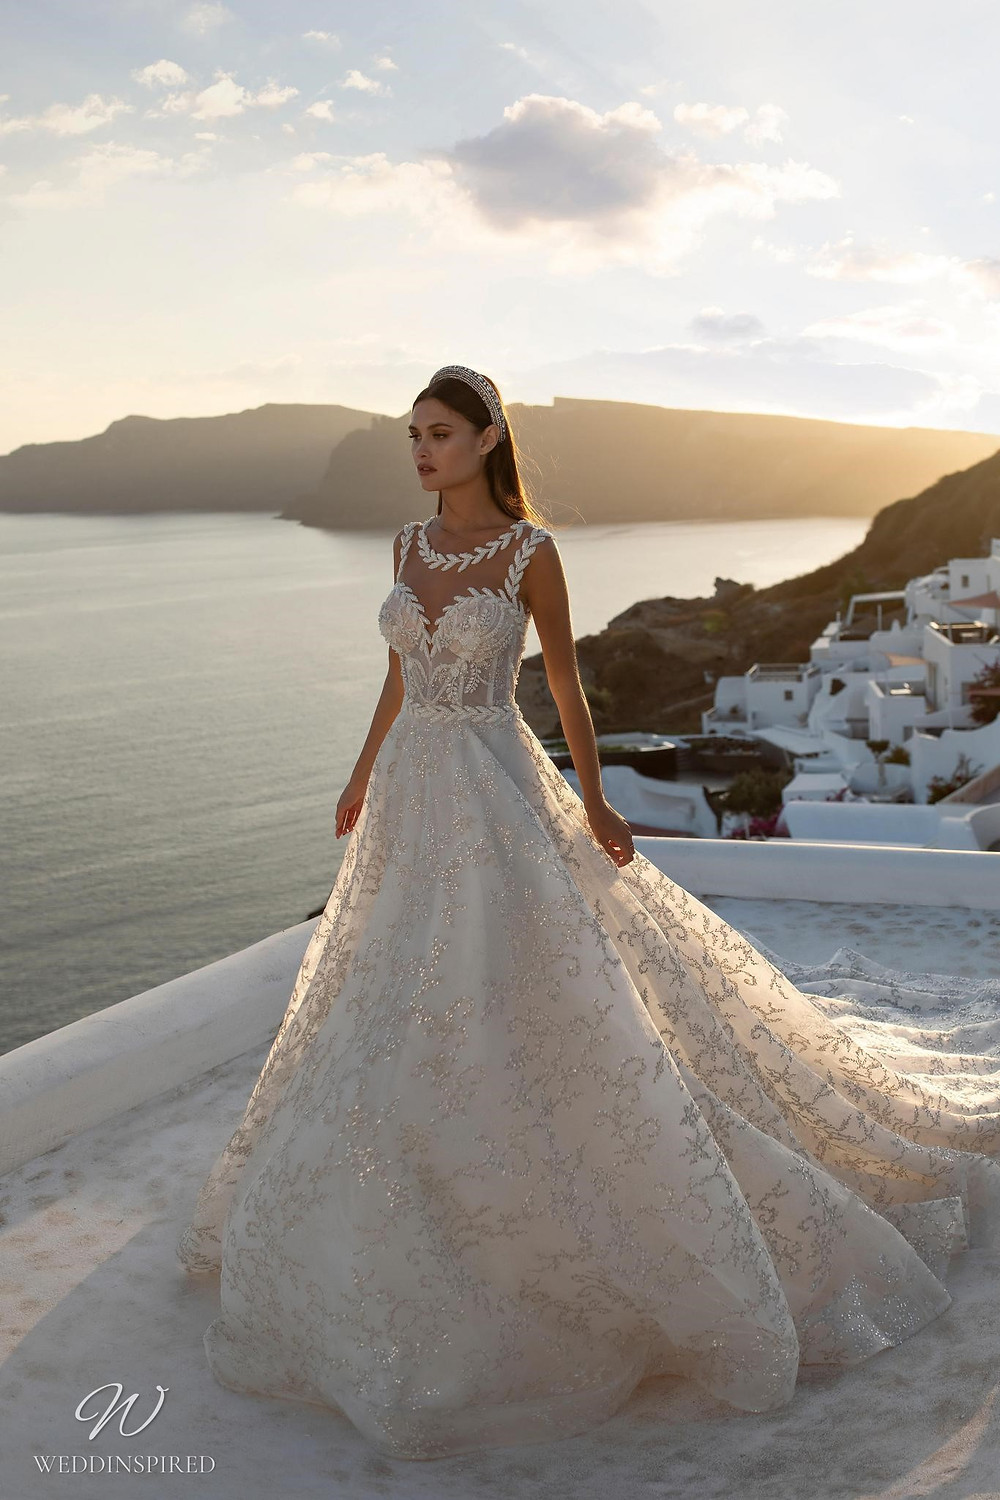 A Ricca Sposa sparkly romantic ball gown wedding dress with a sweetheart neckline and an illusion top